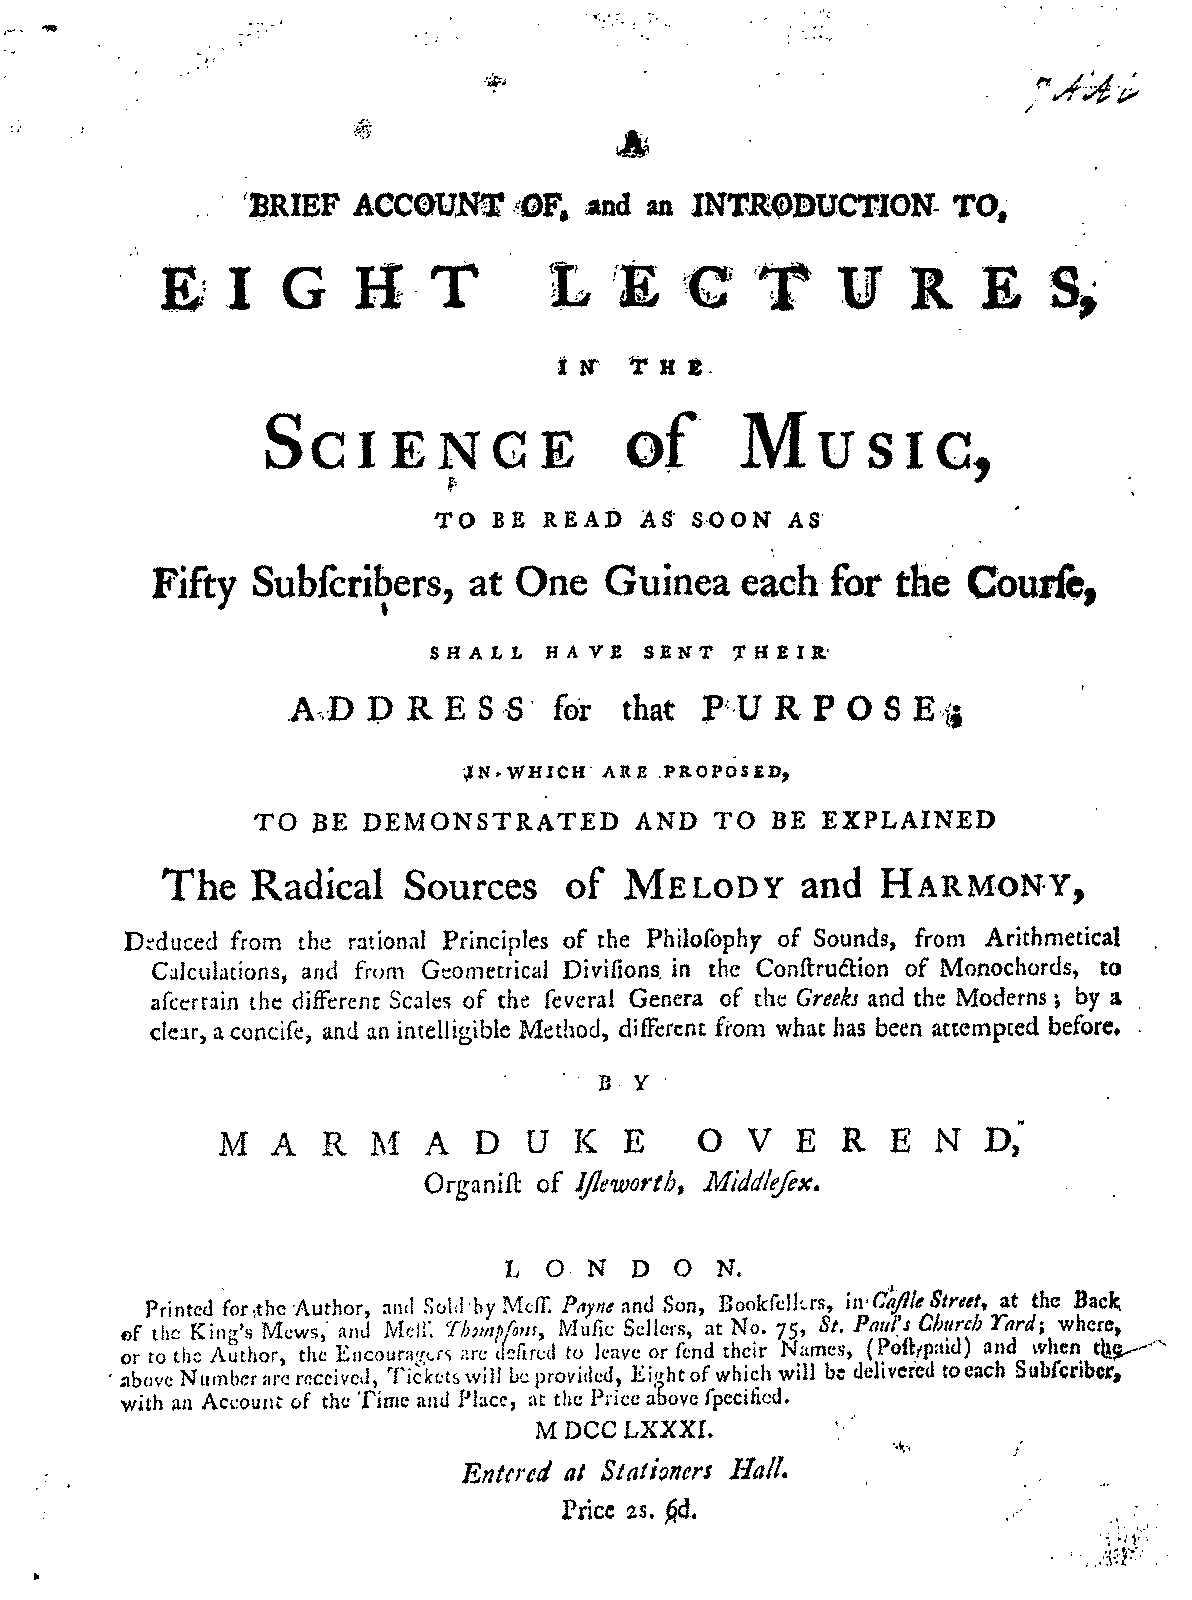 PMLP146729-marmaduke overend introduction to eight lectures 1781.pdf